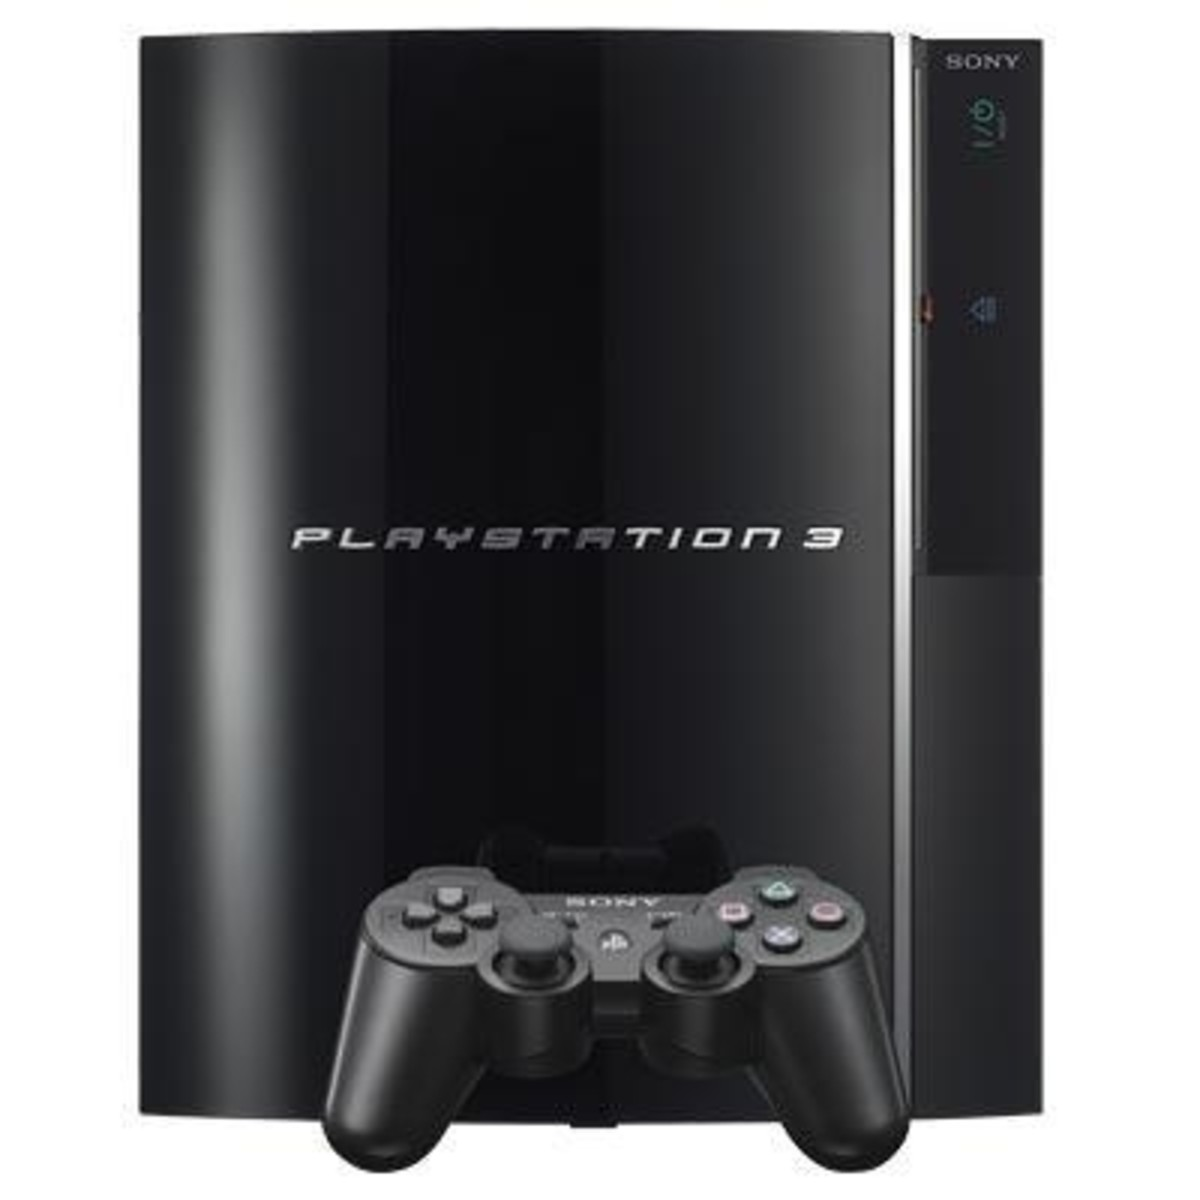 What Is The Difference Between PS3 Models? | HubPages